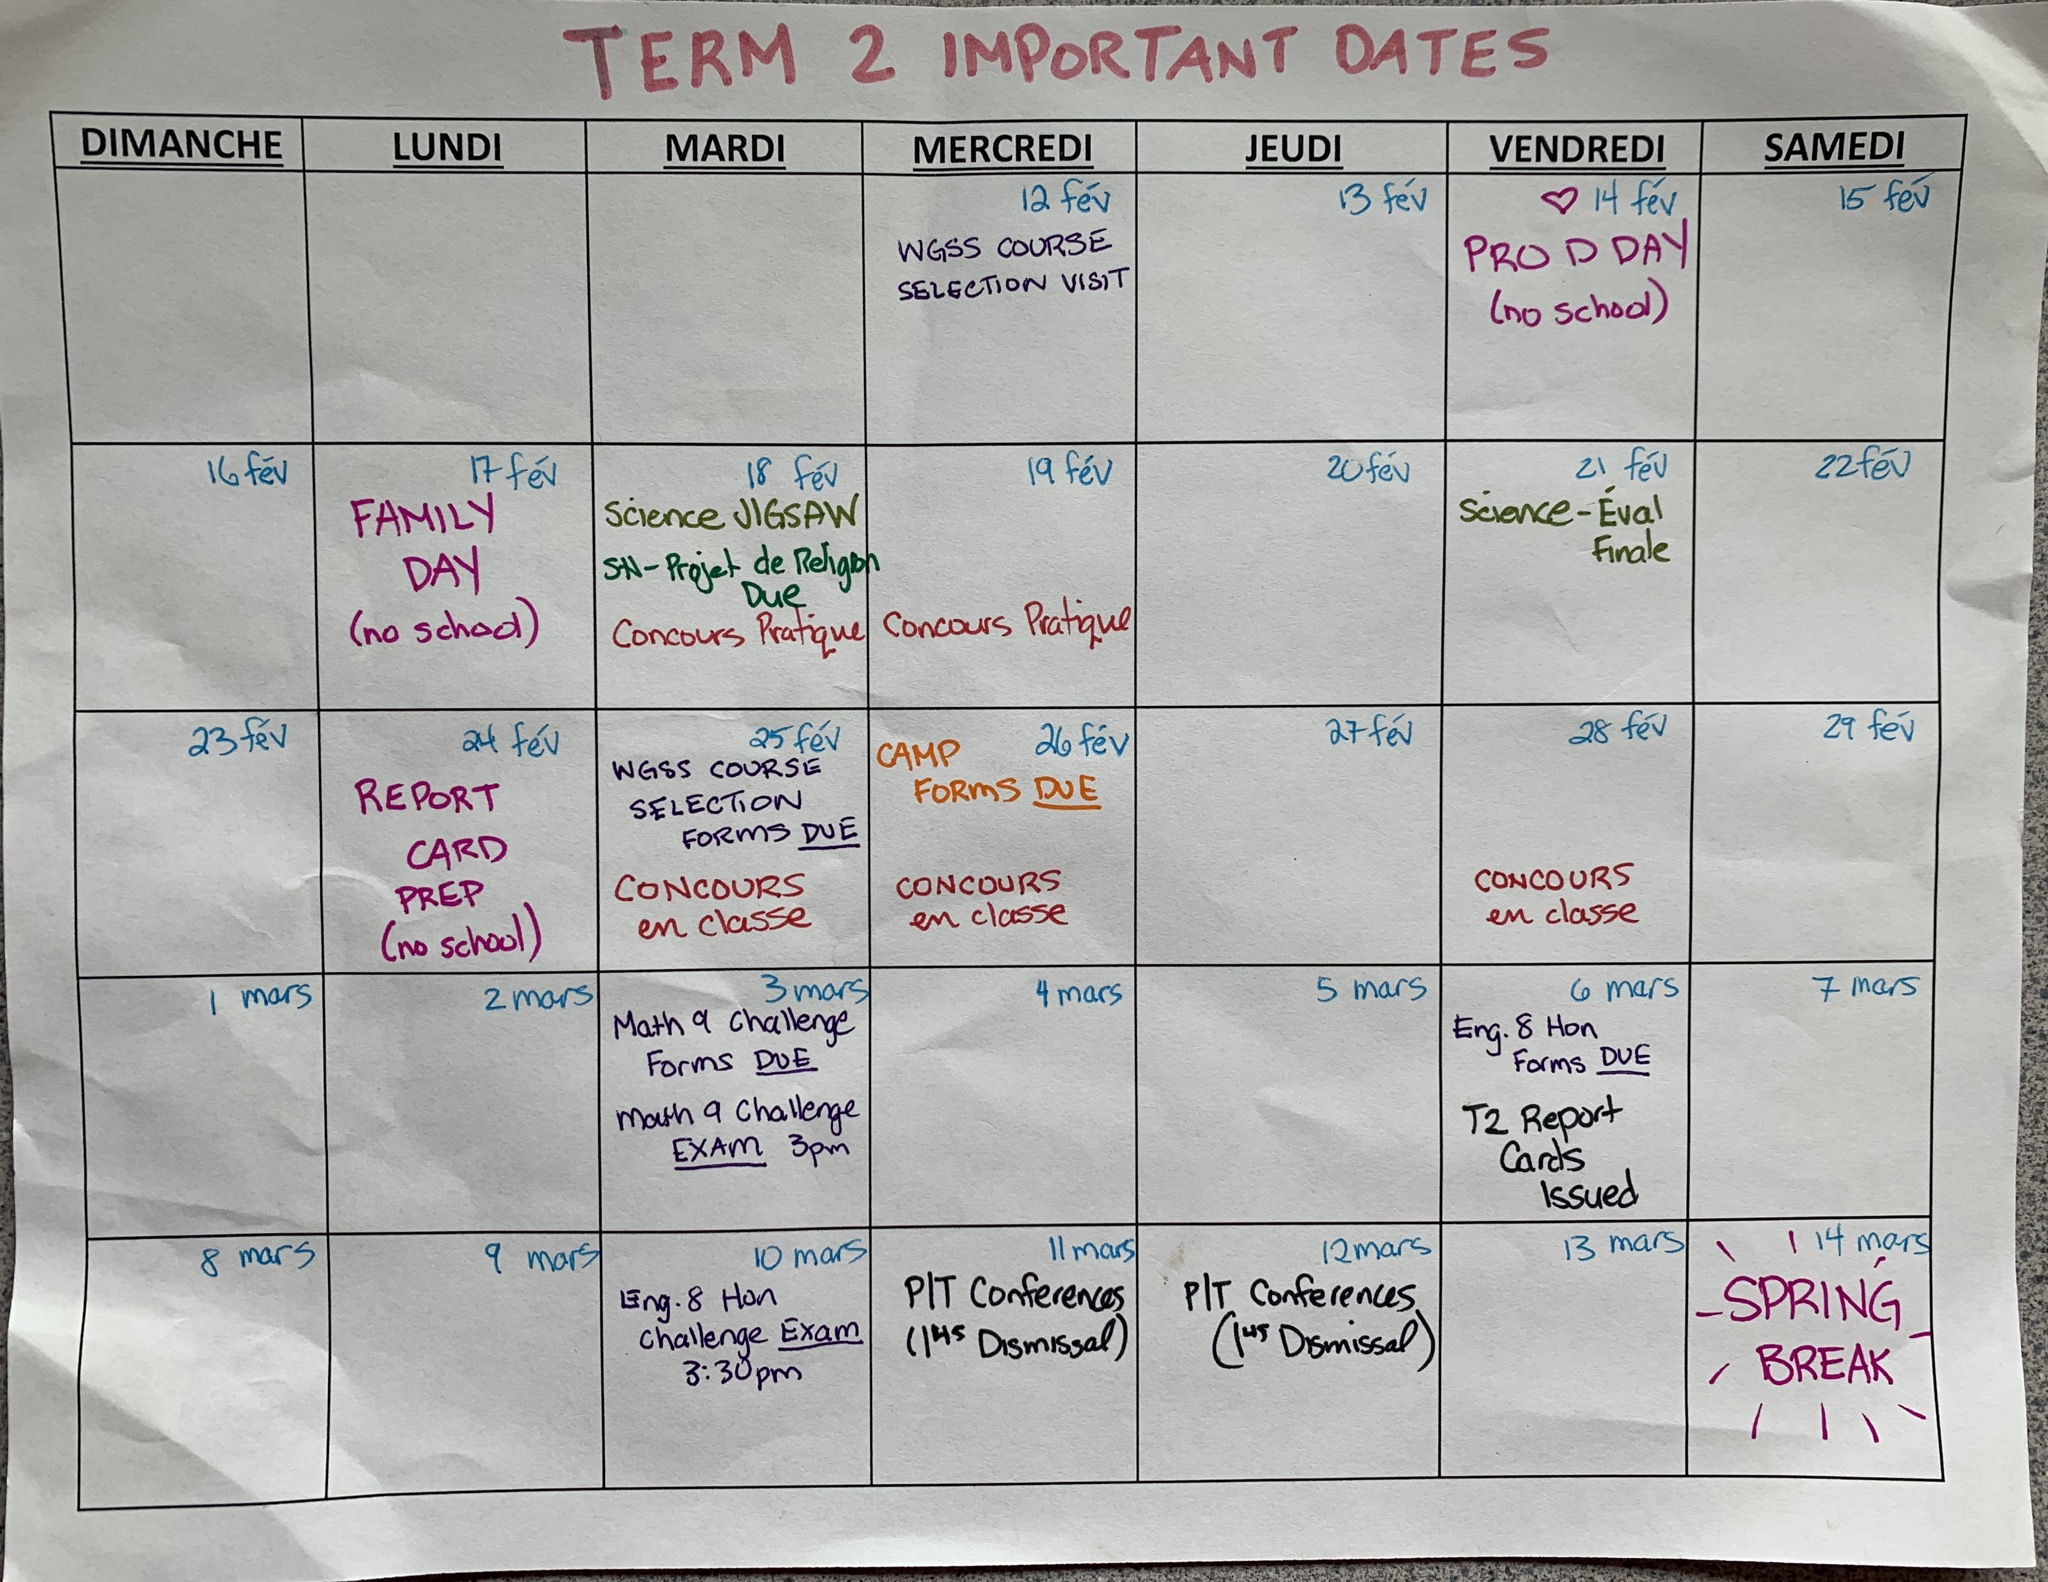 Term 2 Important Dates